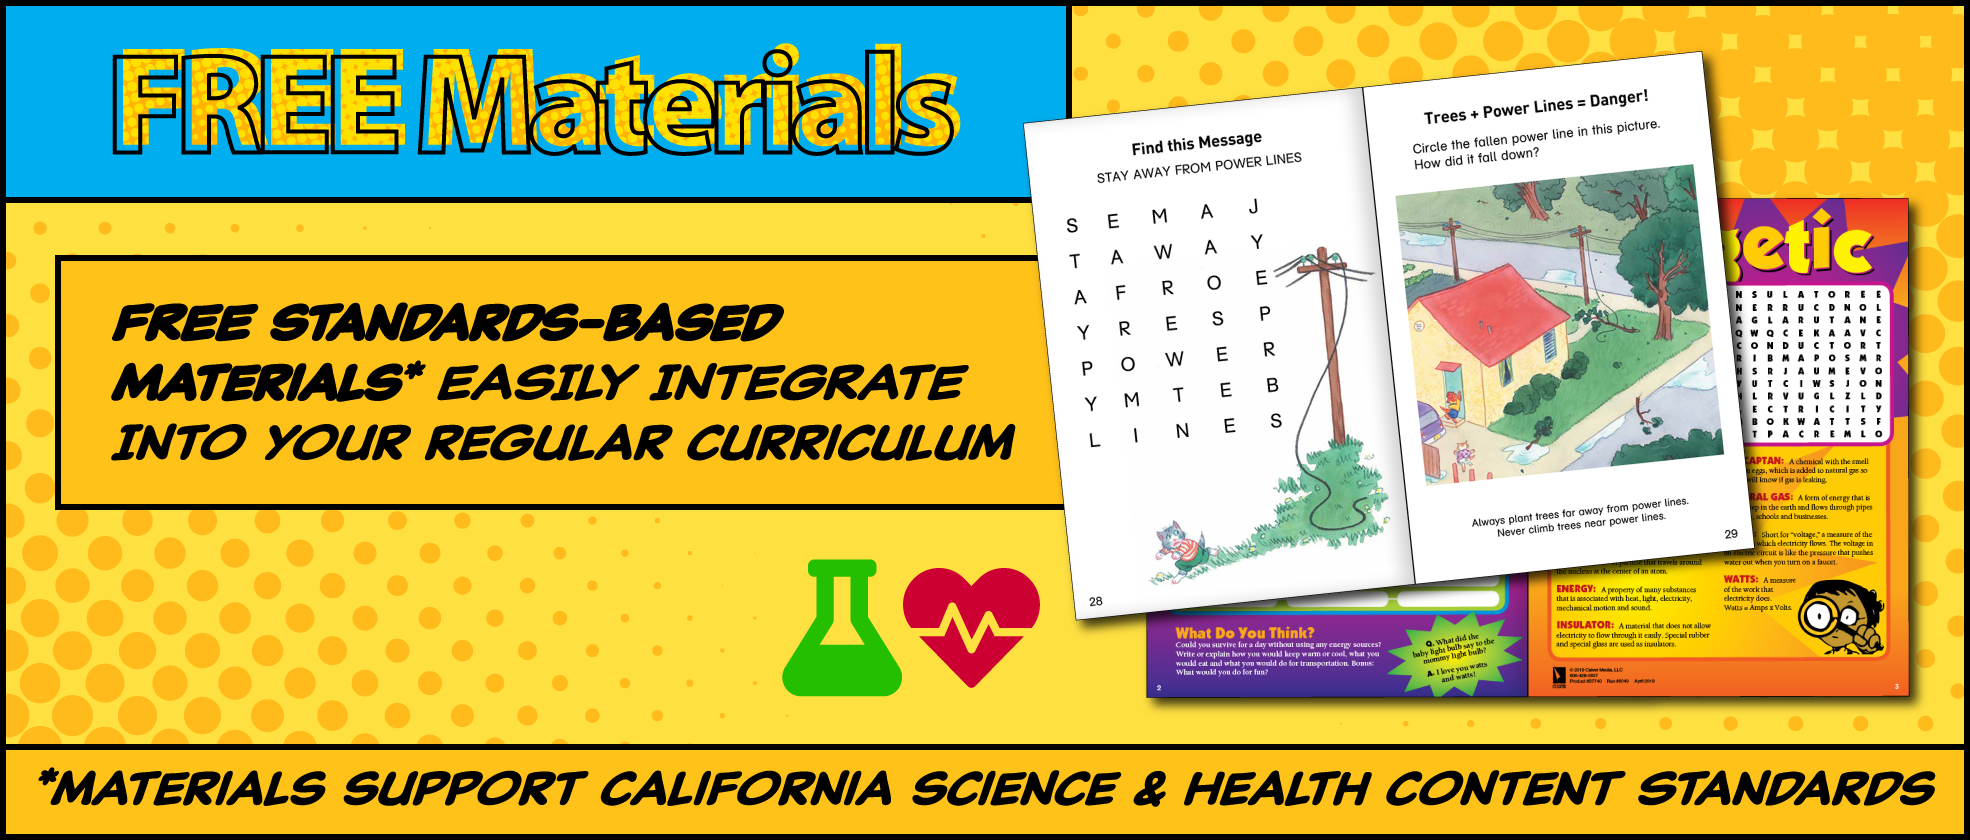 Free materials easily integrate into your regular curriculum. Materials support California Science & Health Content Standards